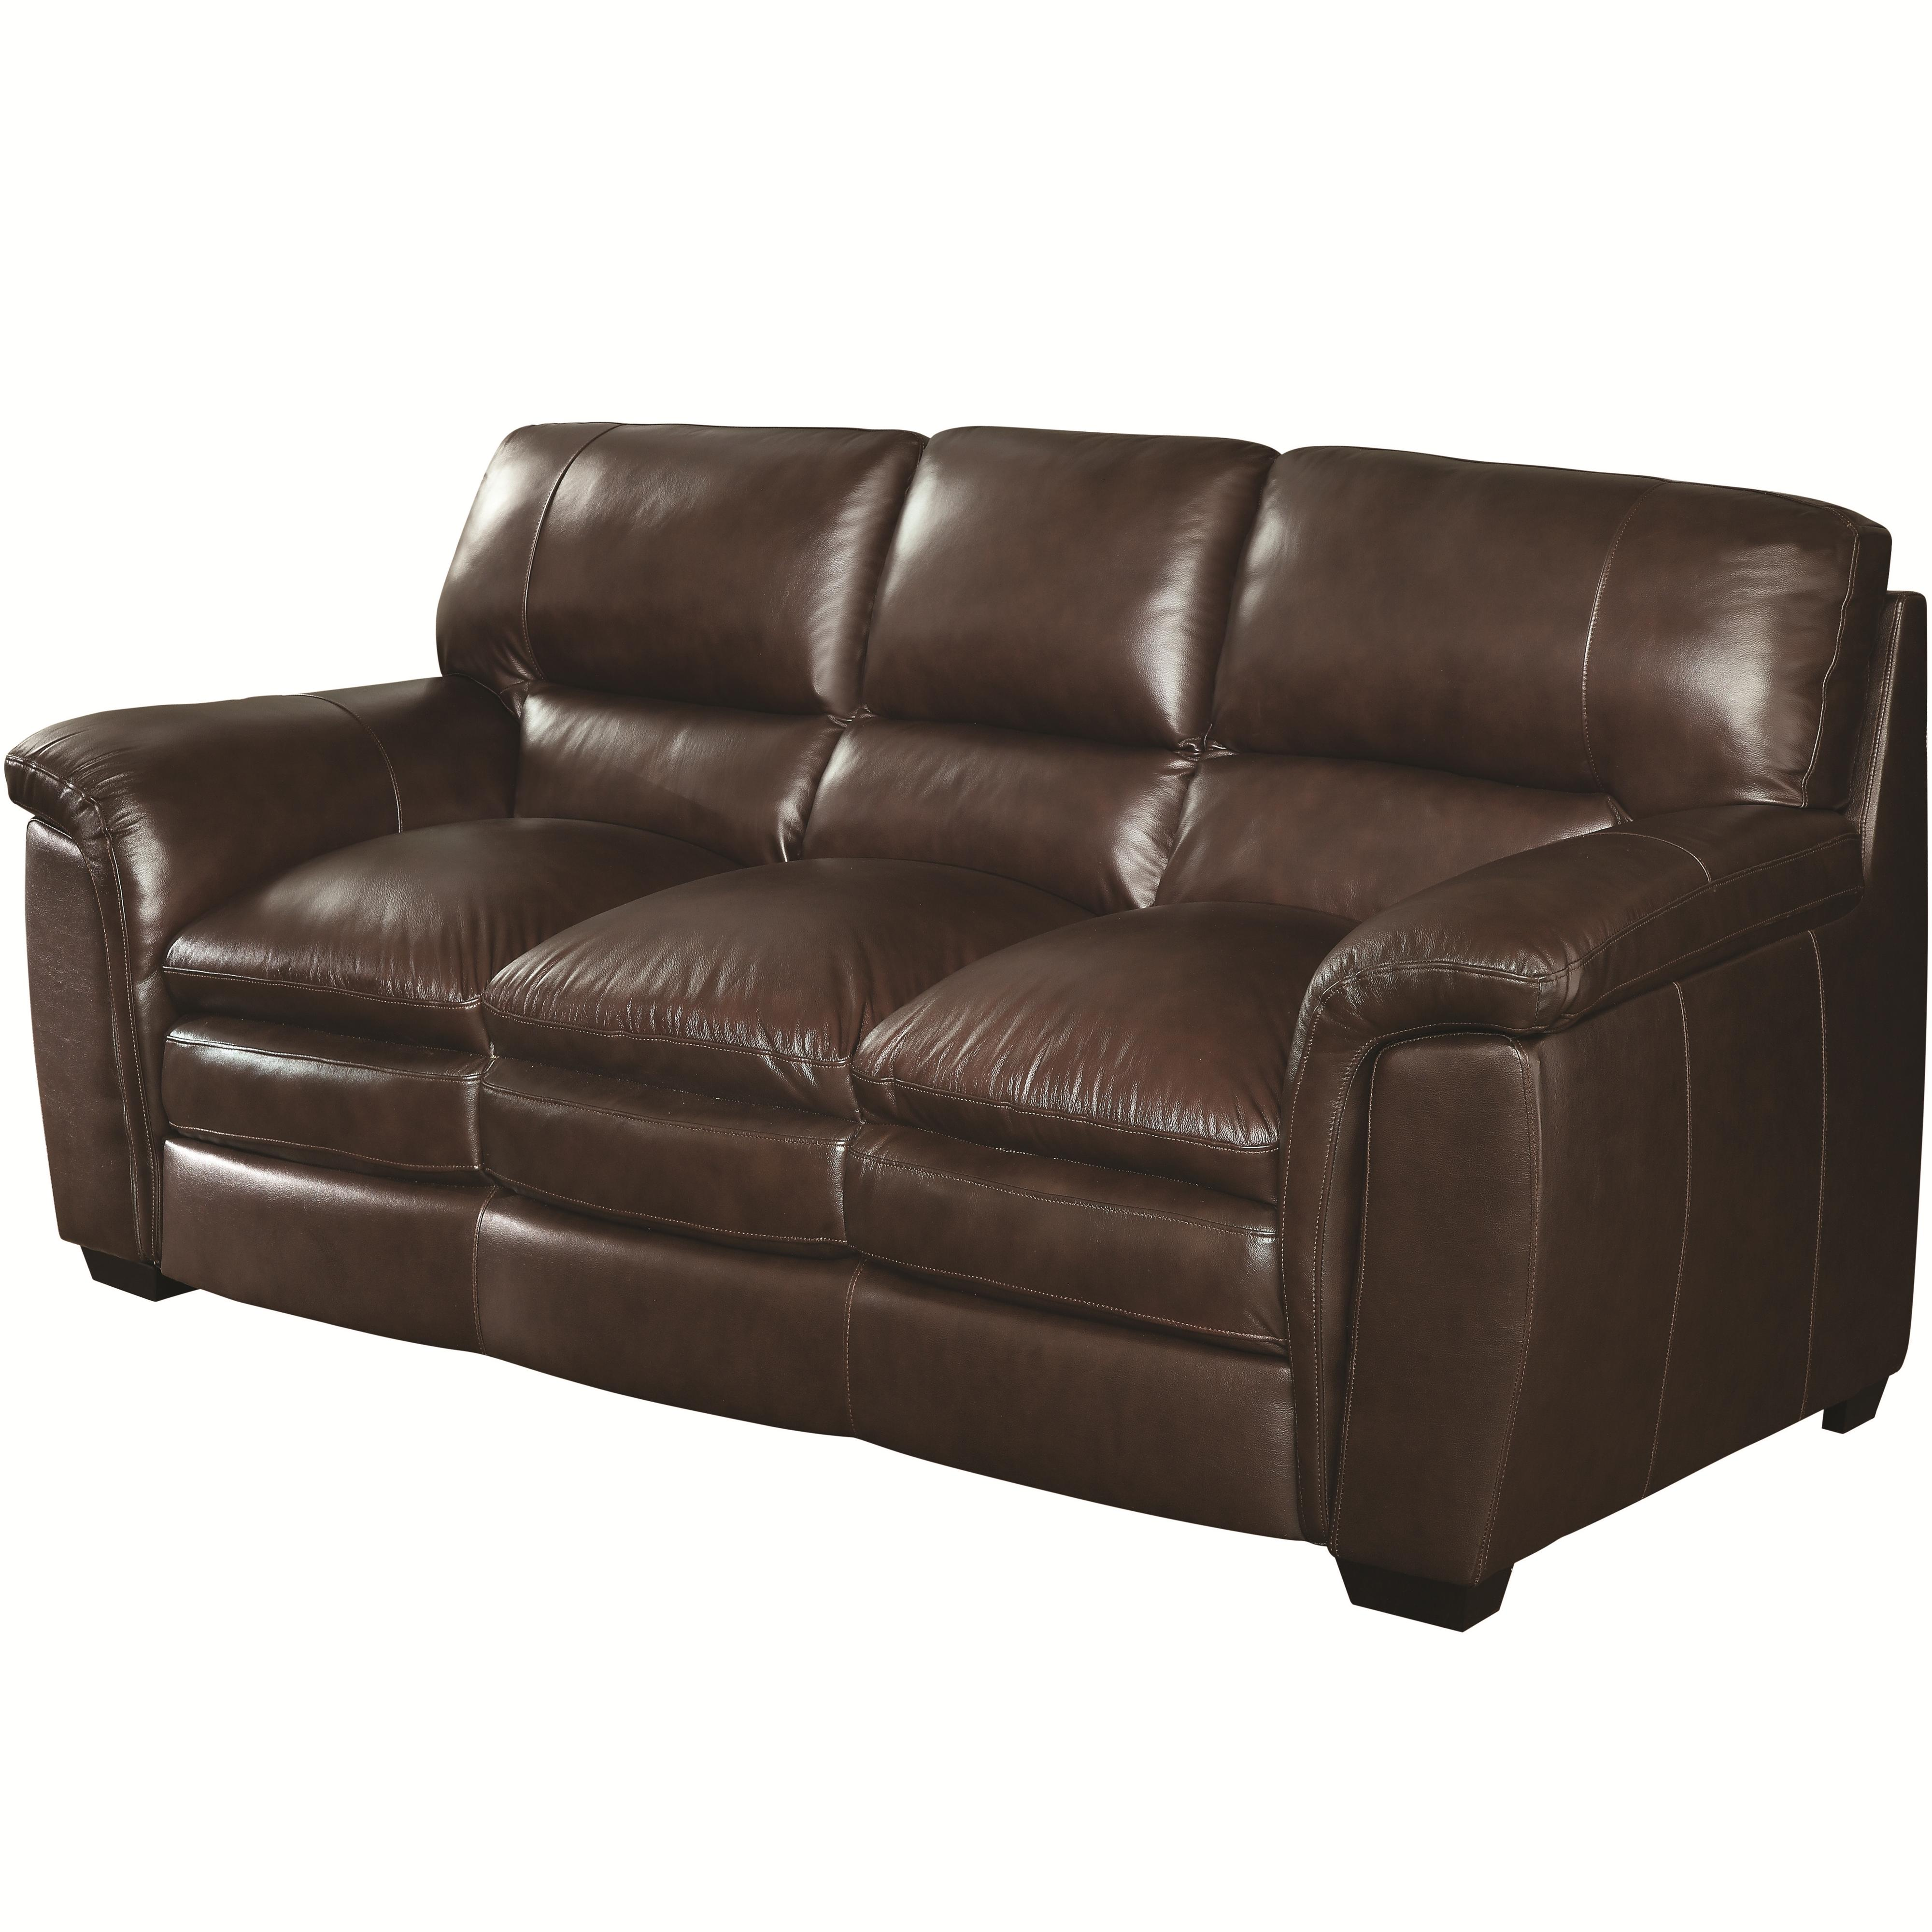 Burton Transitional Sofa With Pillow Top Arms Quality Furniture  ~ Leather Sofa Pillow Top Arms